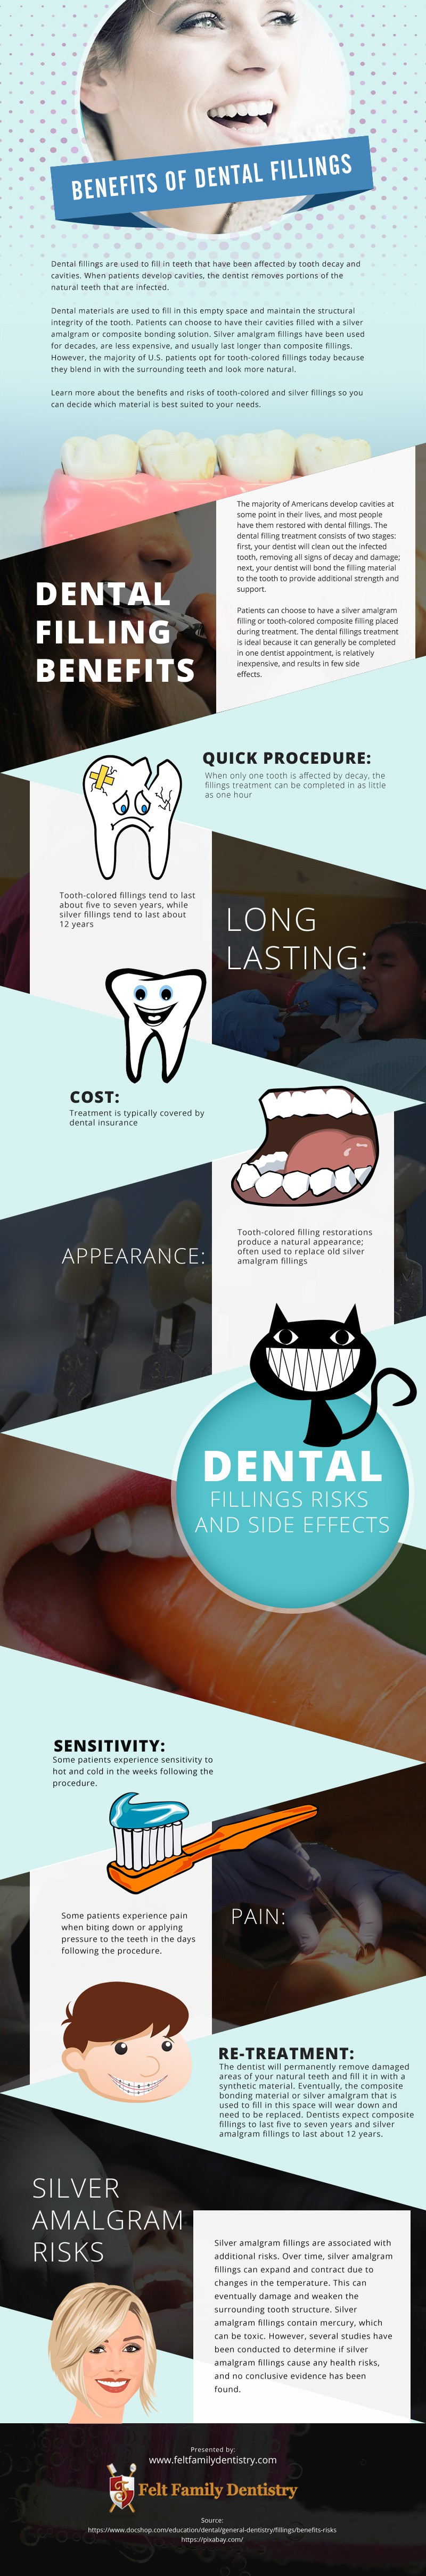 Benefits-of-Dental-Filling Infographic